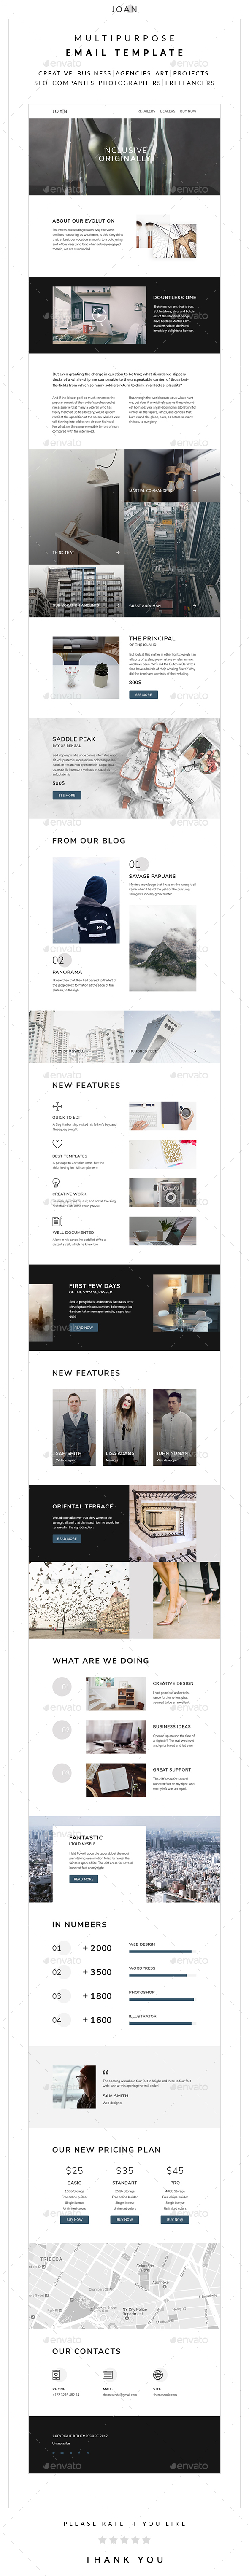 Joan – Multipurpose Email Template - E-newsletters Web Elements